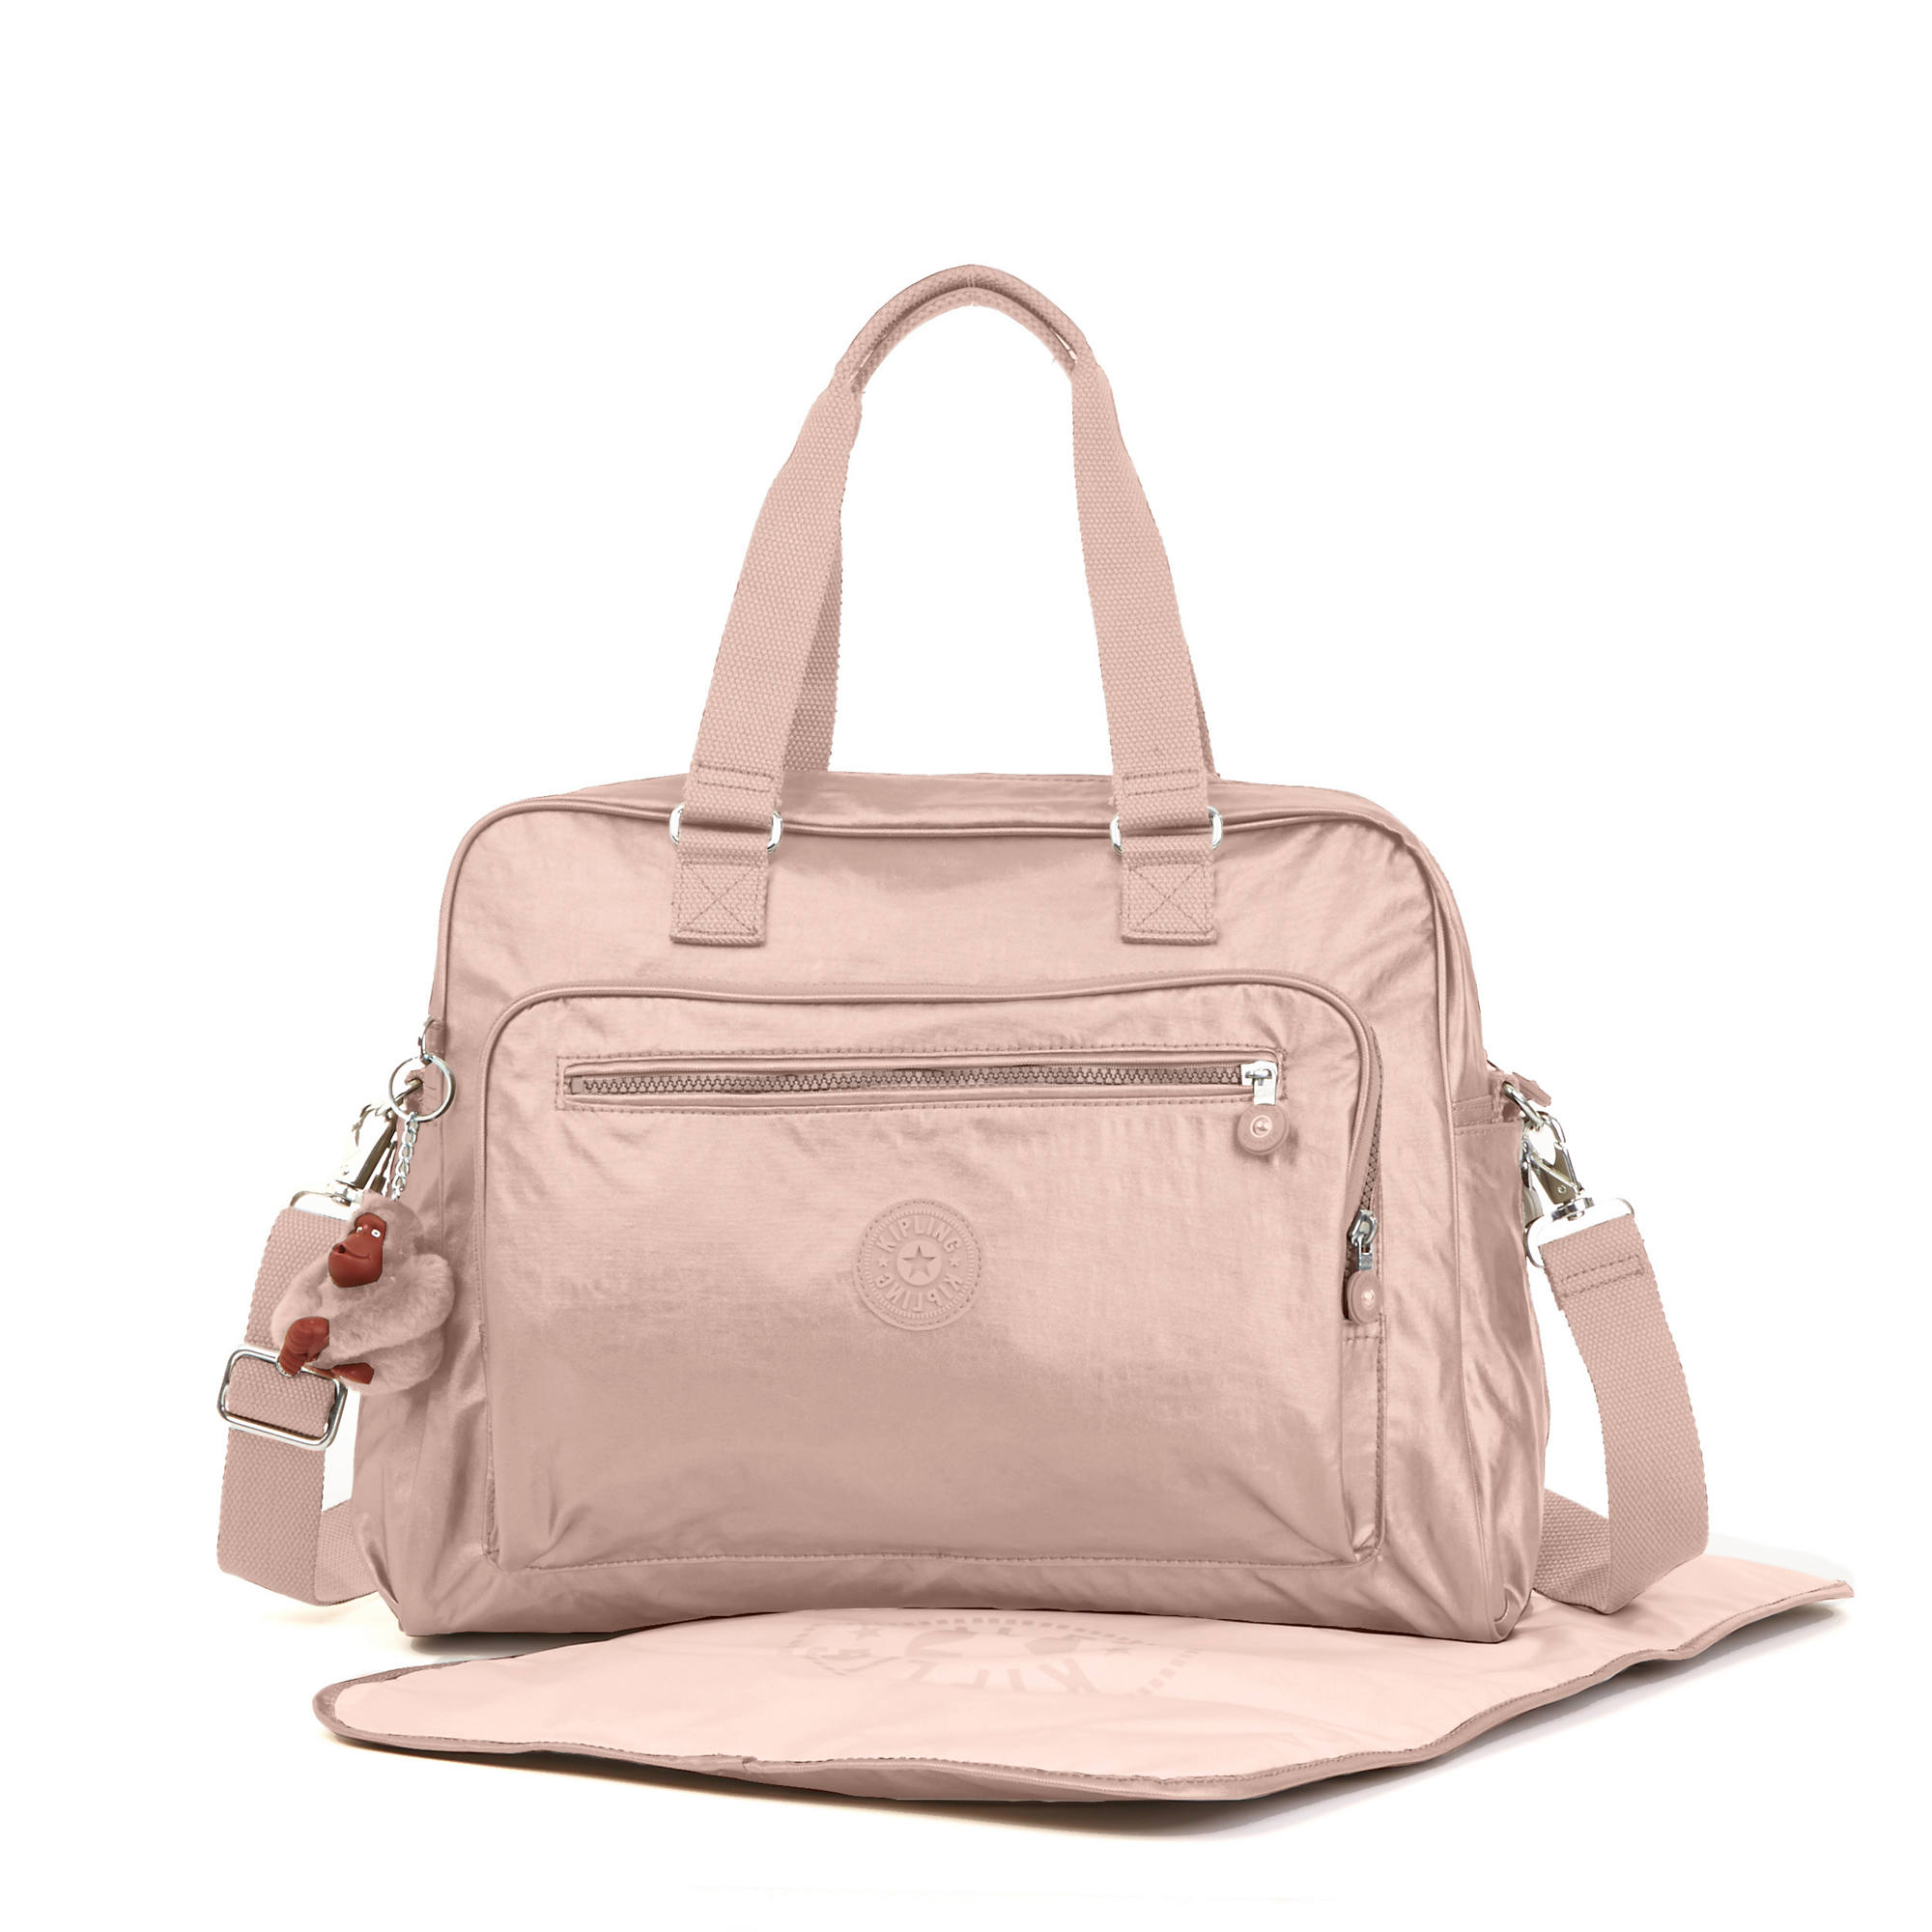 Alanna Metallic Diaper Bag Rose Gold Large